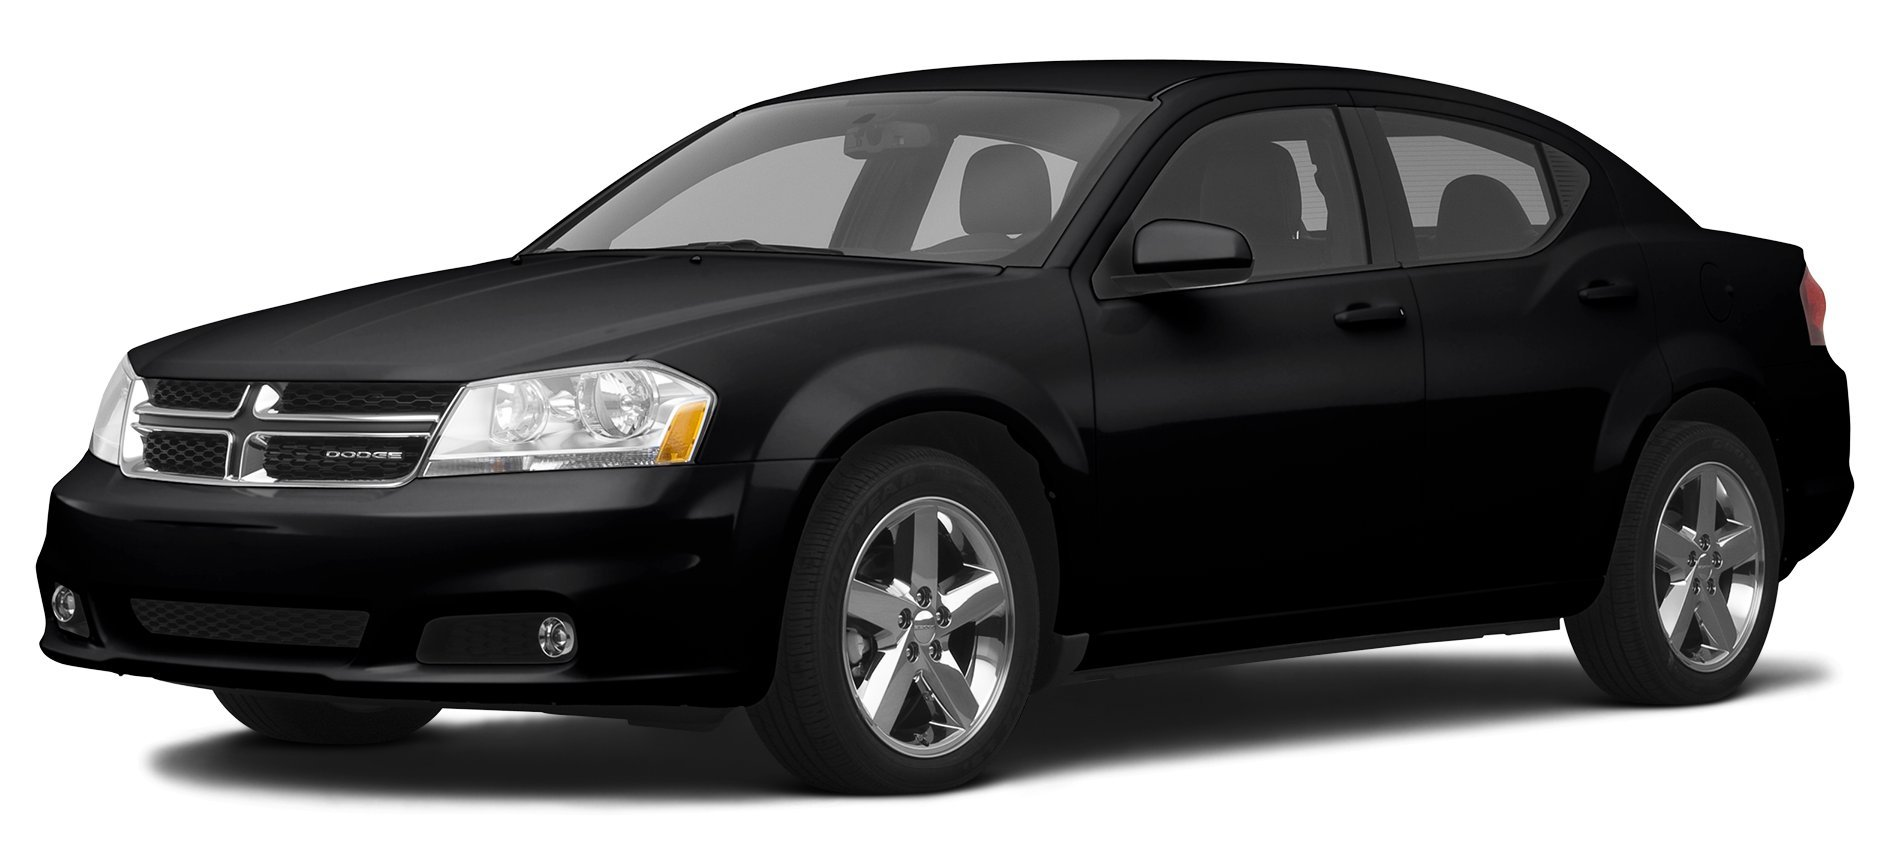 Amazon Com 2011 Toyota Camry Reviews Images And Specs